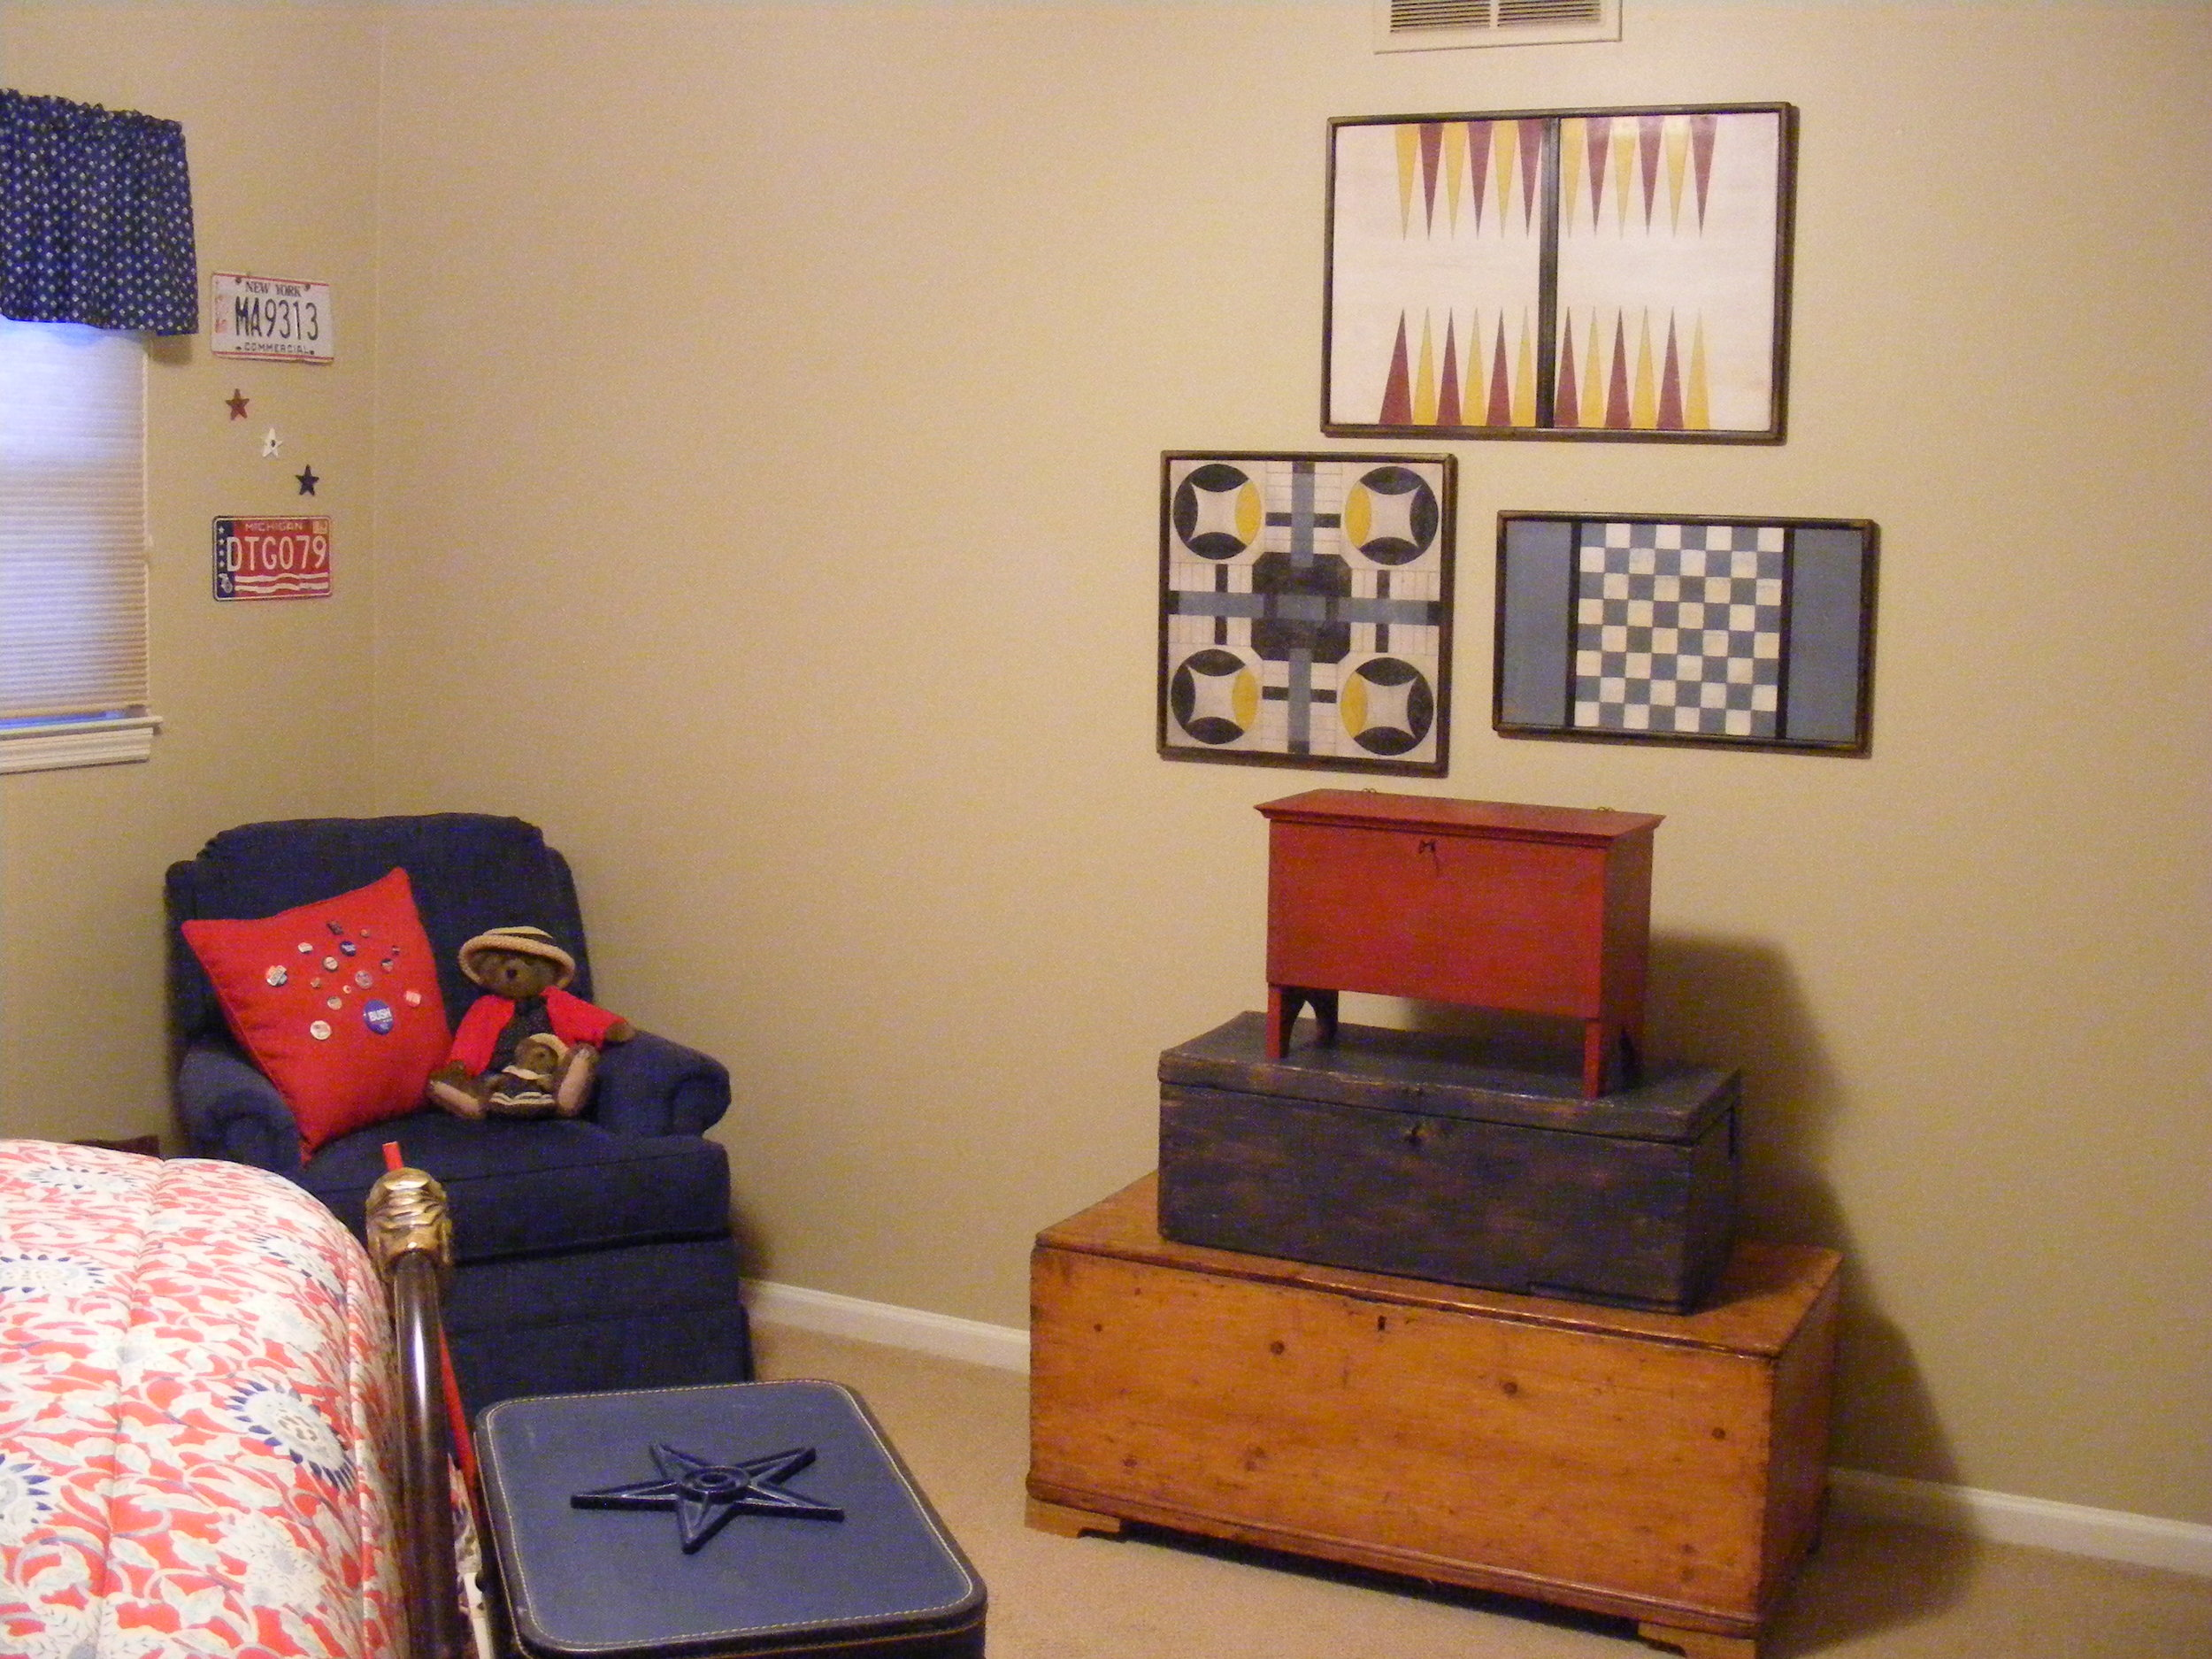 backgammon, home sweet home, blue checker board.jpg